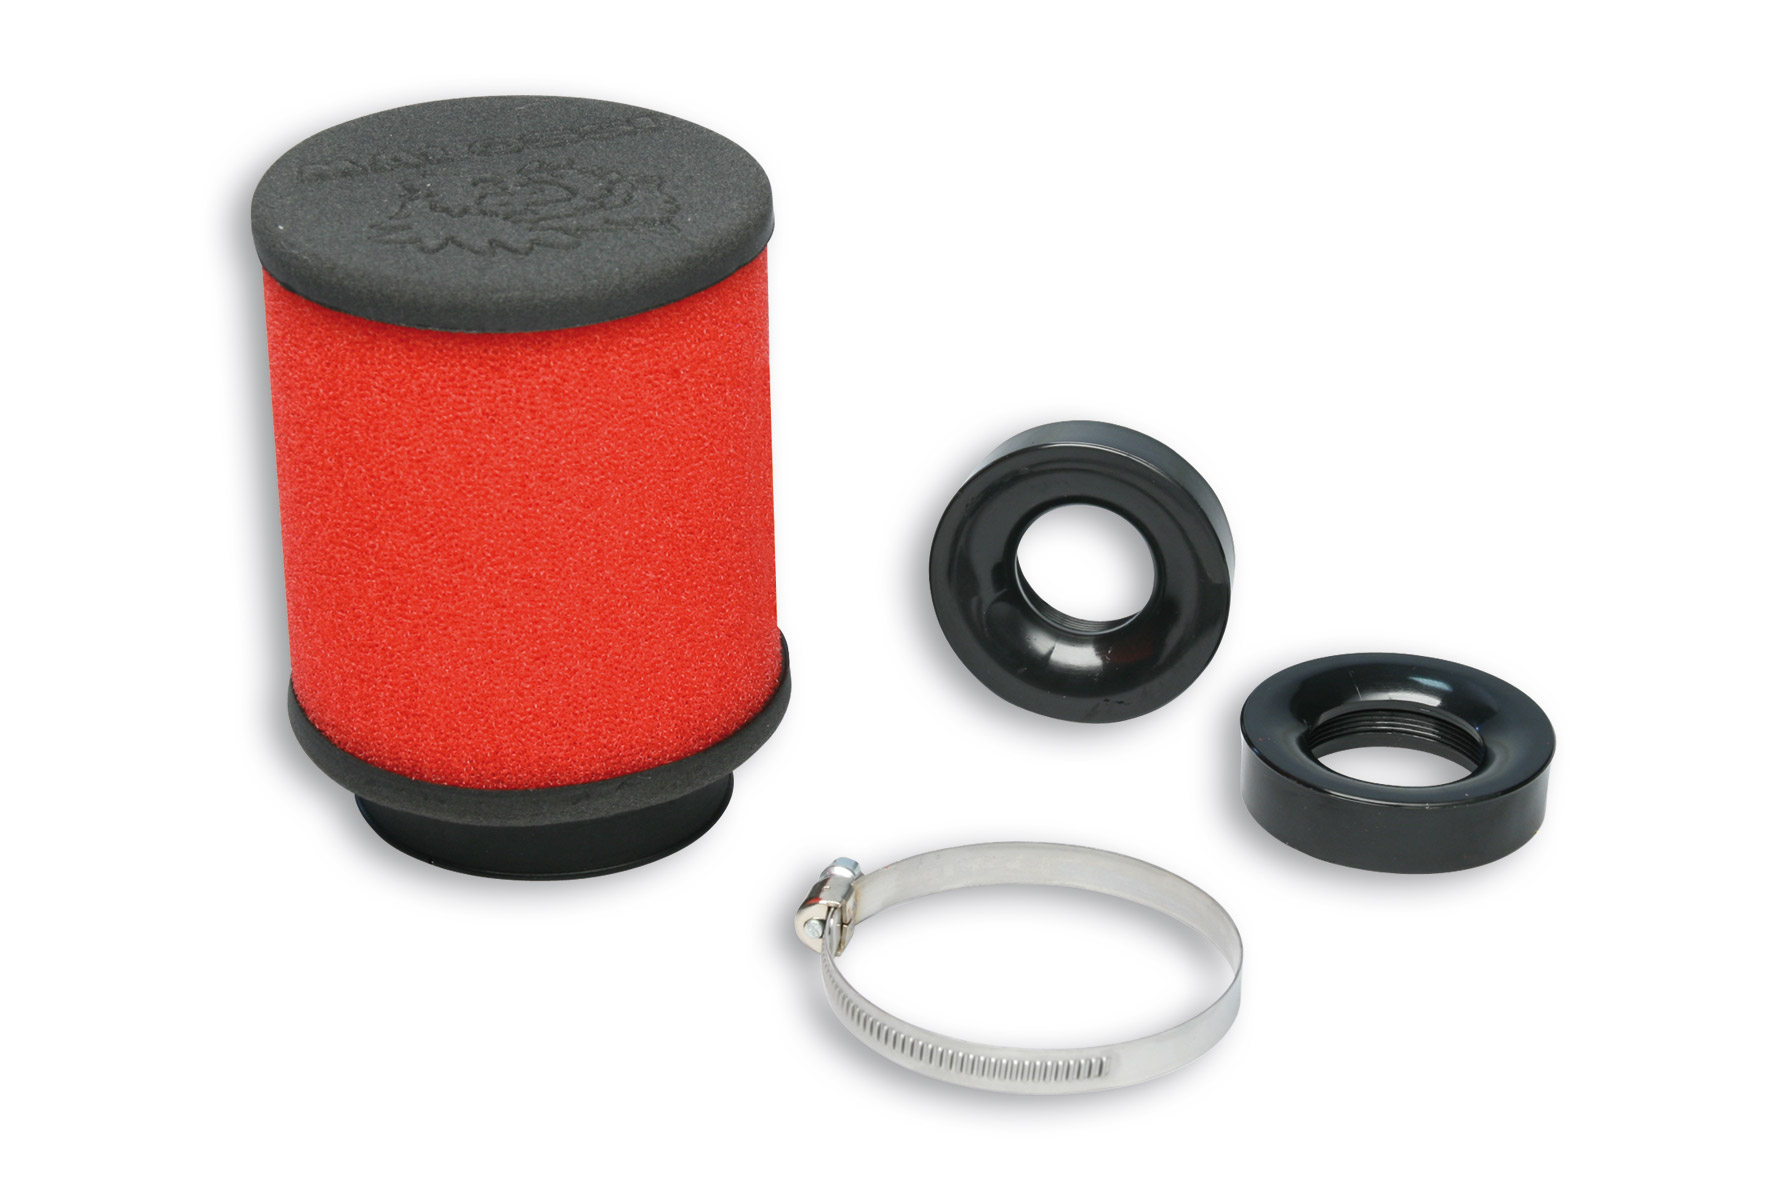 RED FILTER E16 Ø 60 PHBG 15-21 - PHBL 20-26 threaded